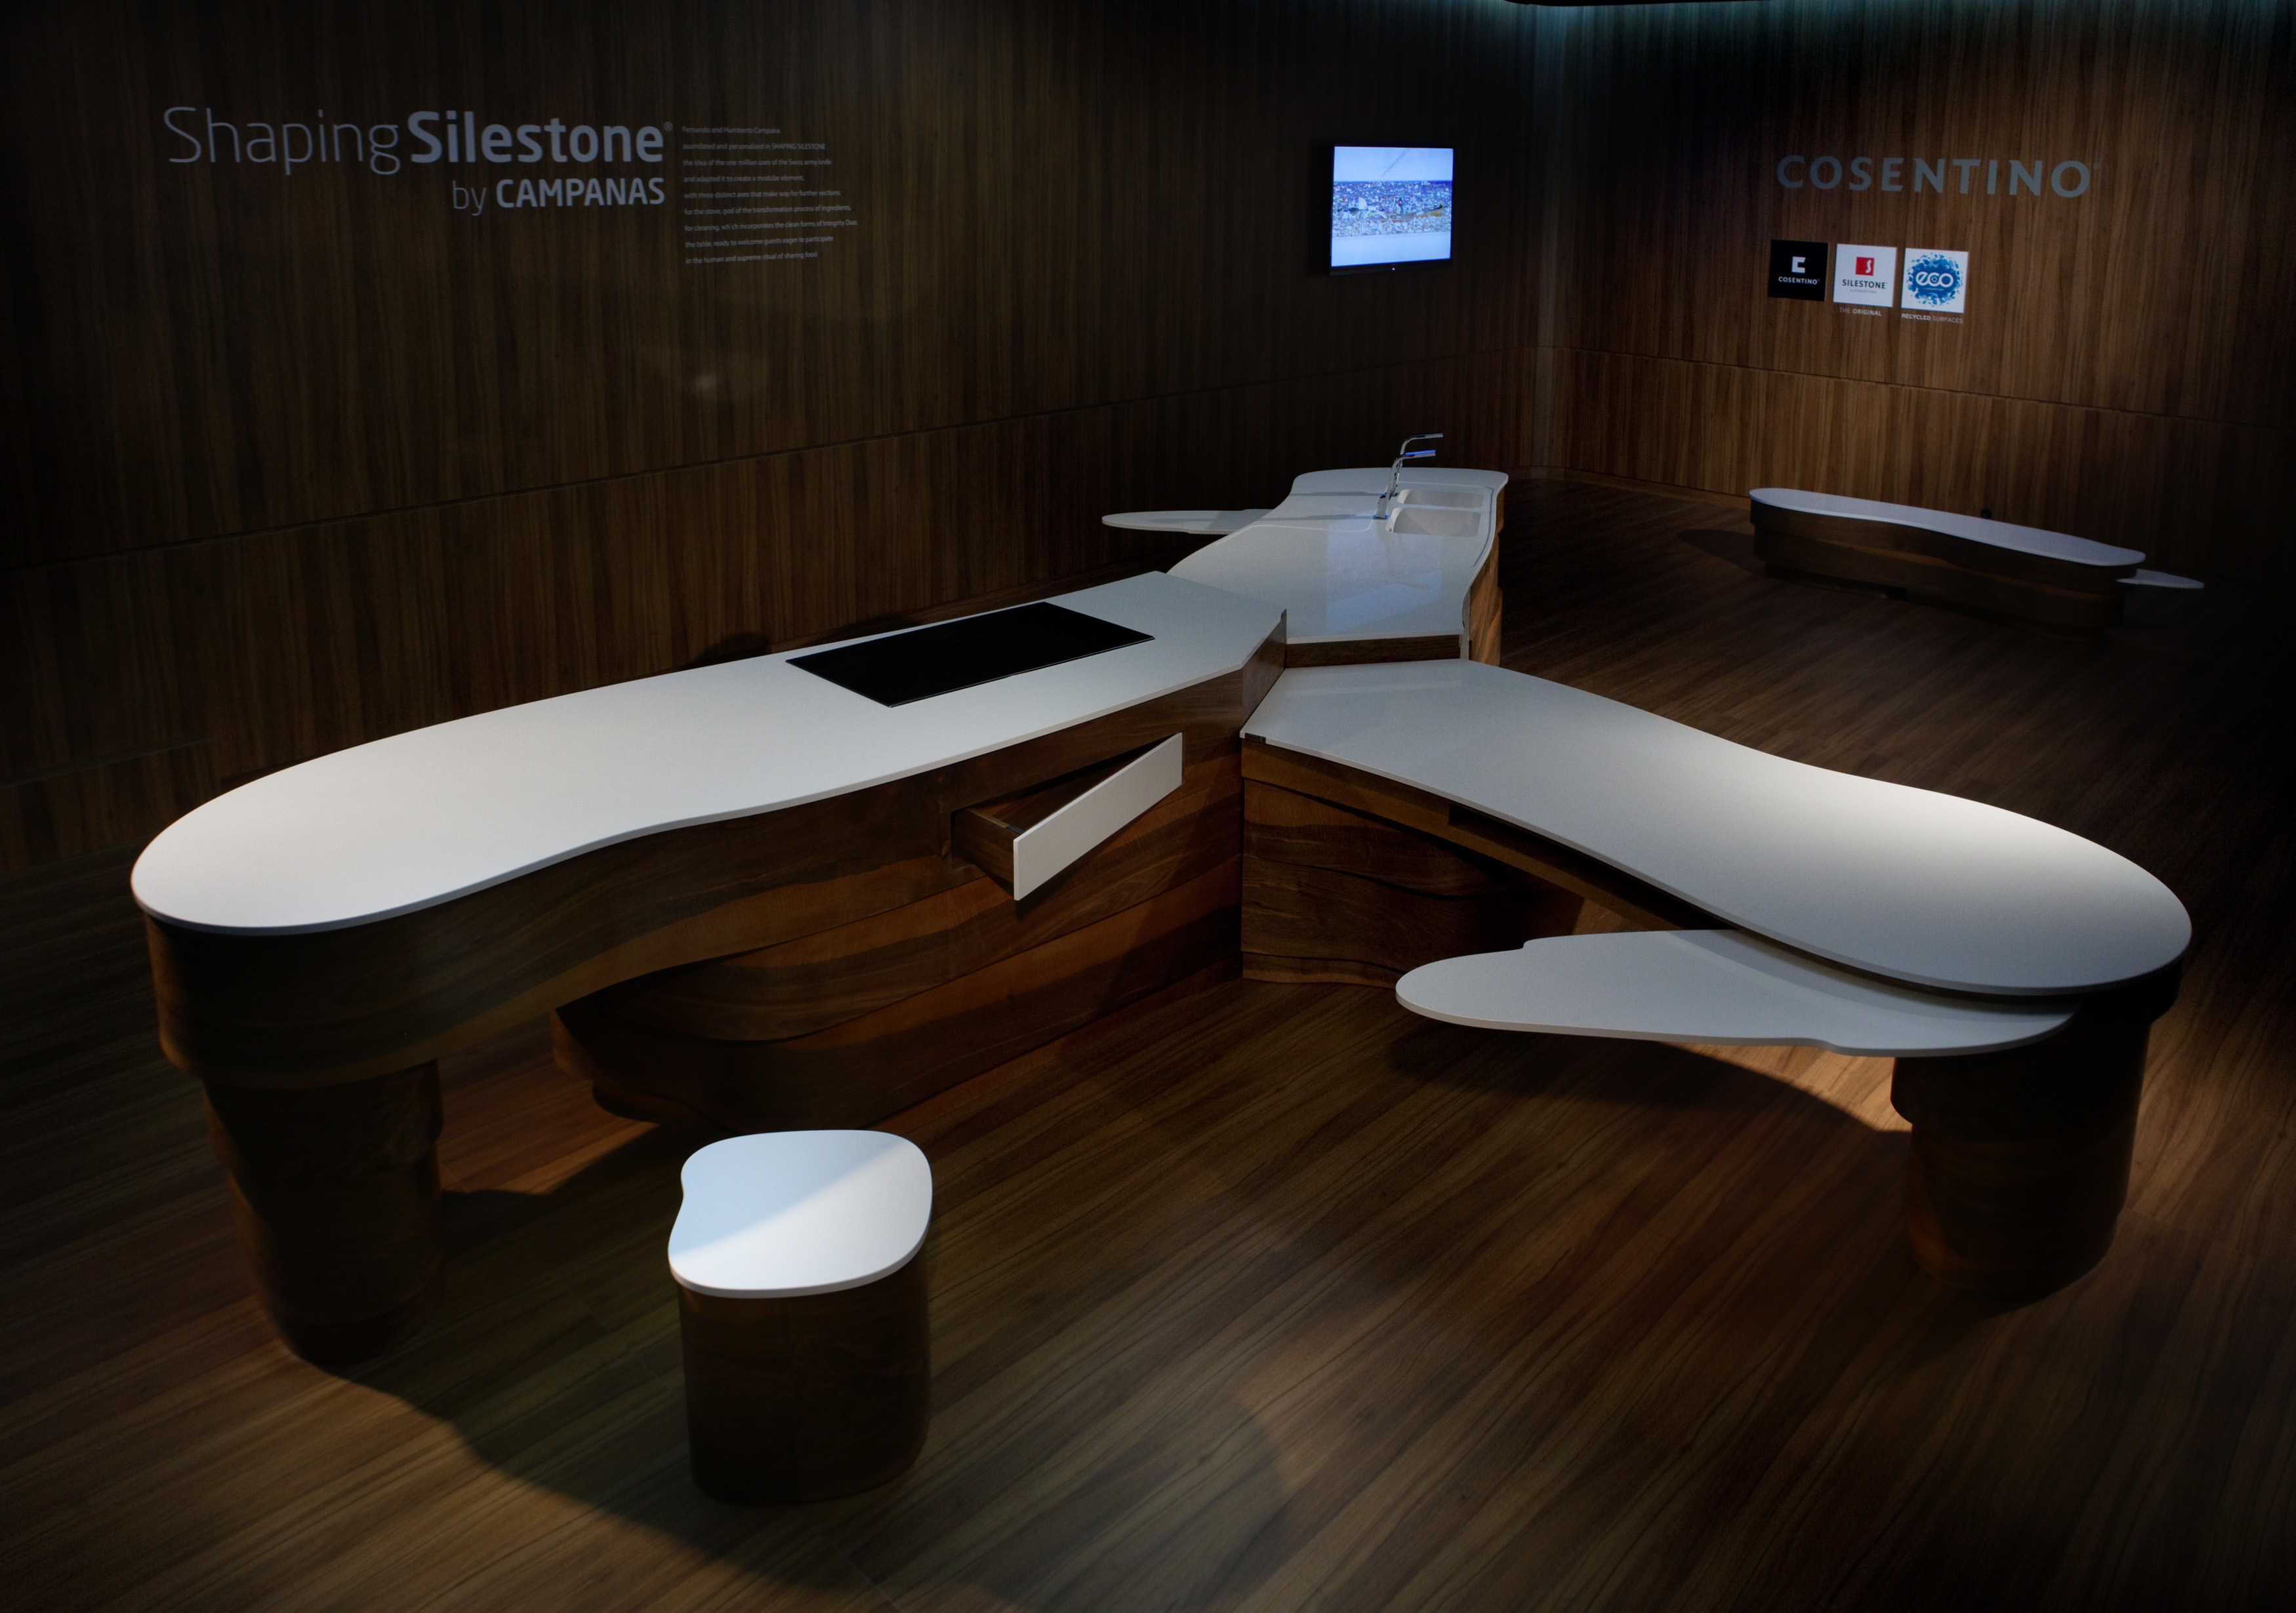 Introducing SHAPING SILESTONE® An Innovative Furniture Project By The  Campana Brothers For Cosentino